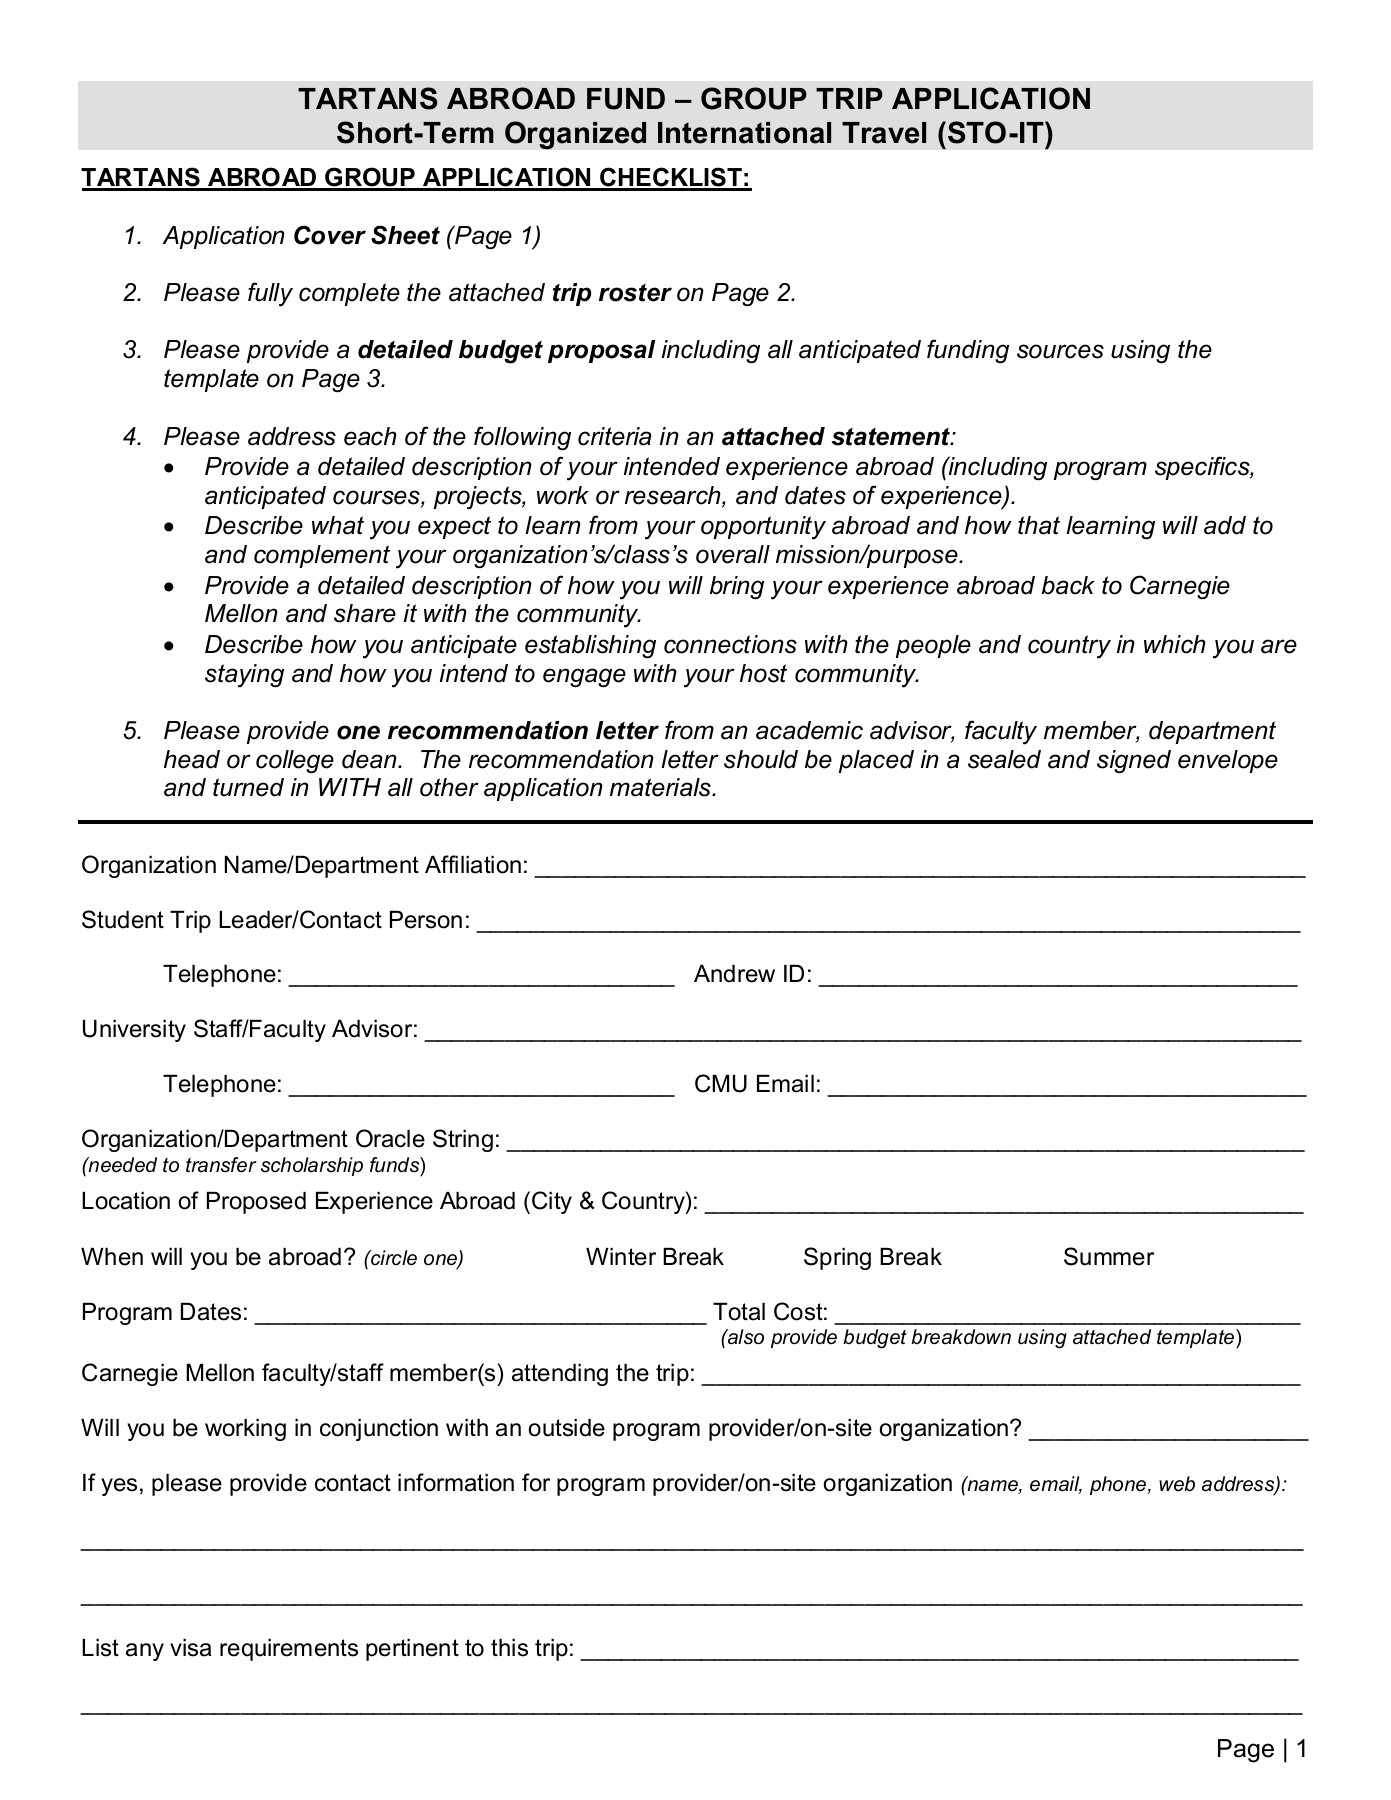 TARTANS ABROAD FUND- GROUP TRIP APPLICATION Pages 1 - 4 ...